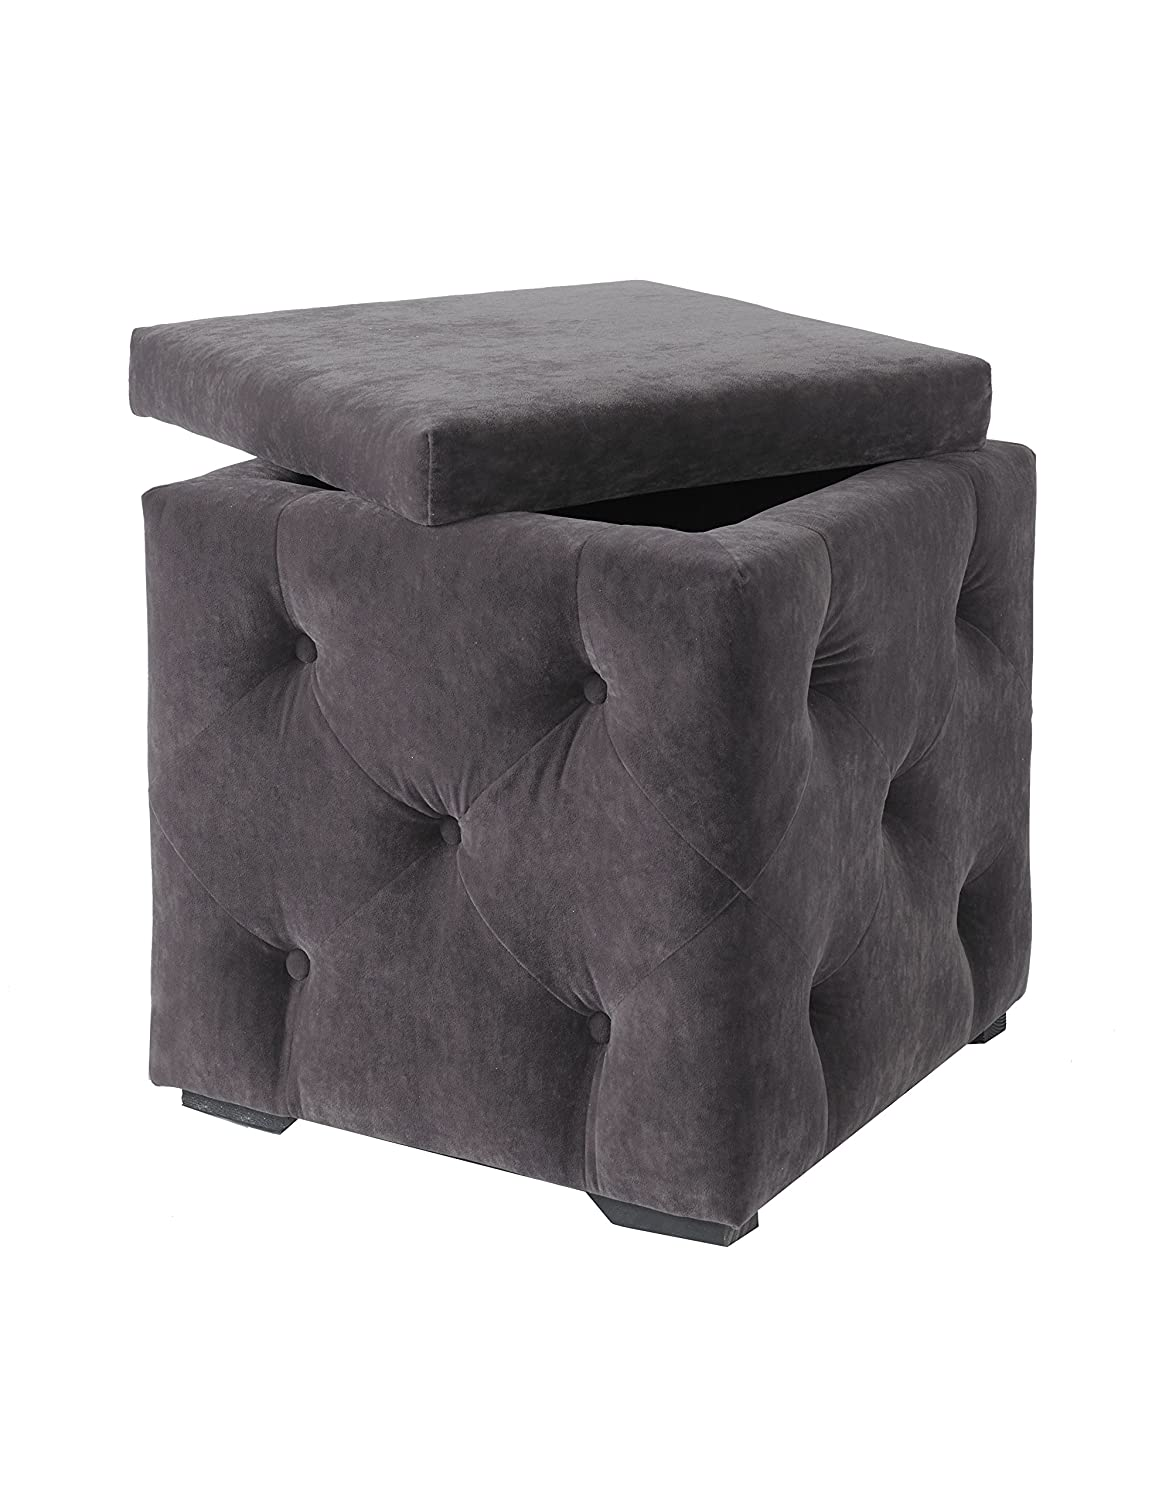 DOWNTON INTERIORS Vintage Style Dark Grey Upholstered Fabric Button Storage Box Stool with Black Legs (LVALENCHARBOX) **Full Range of Matching DOLCE Furniture is Available **